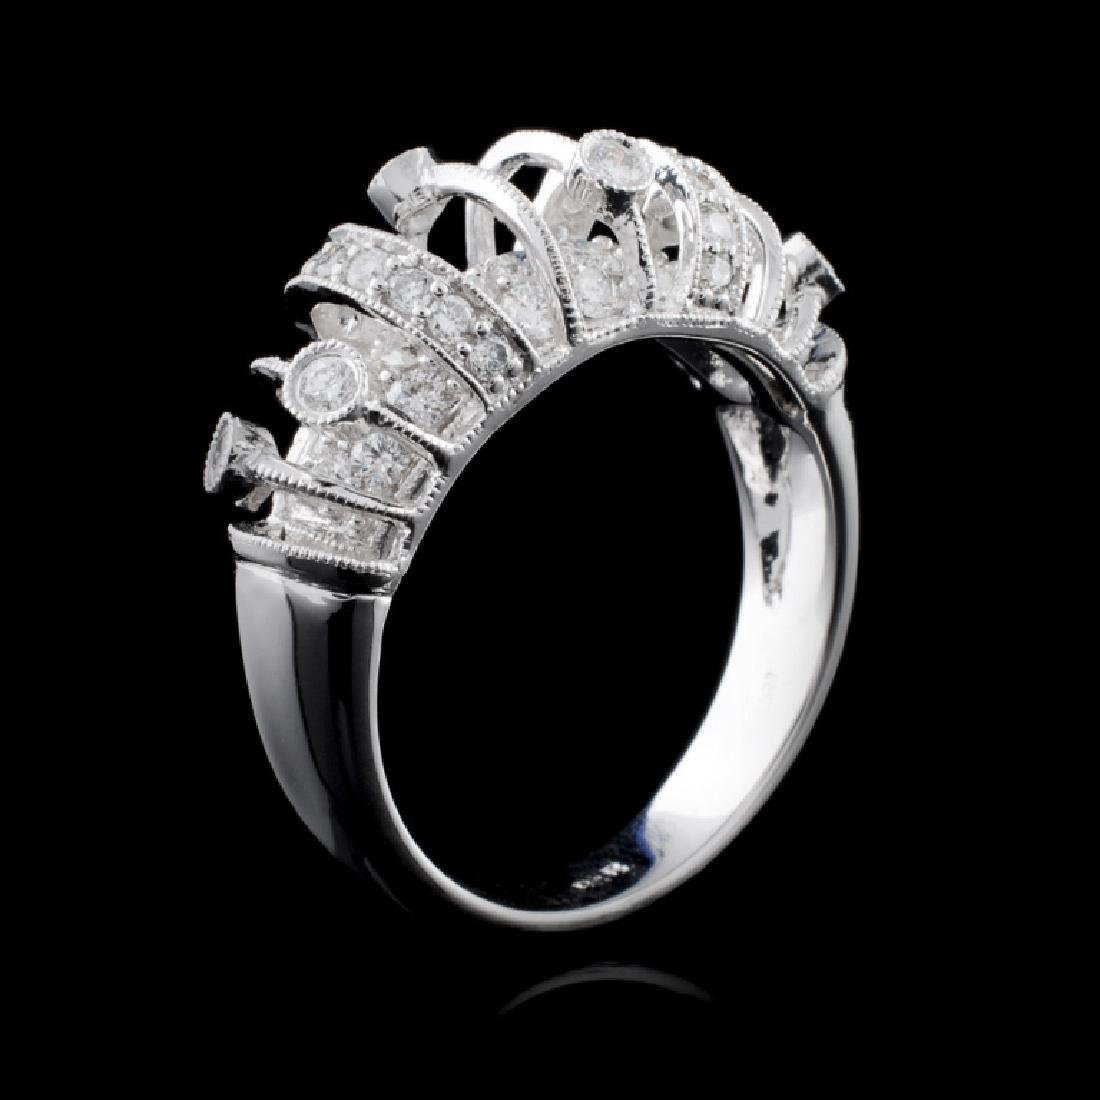 18K White Gold 0.89ct Diamond Ring